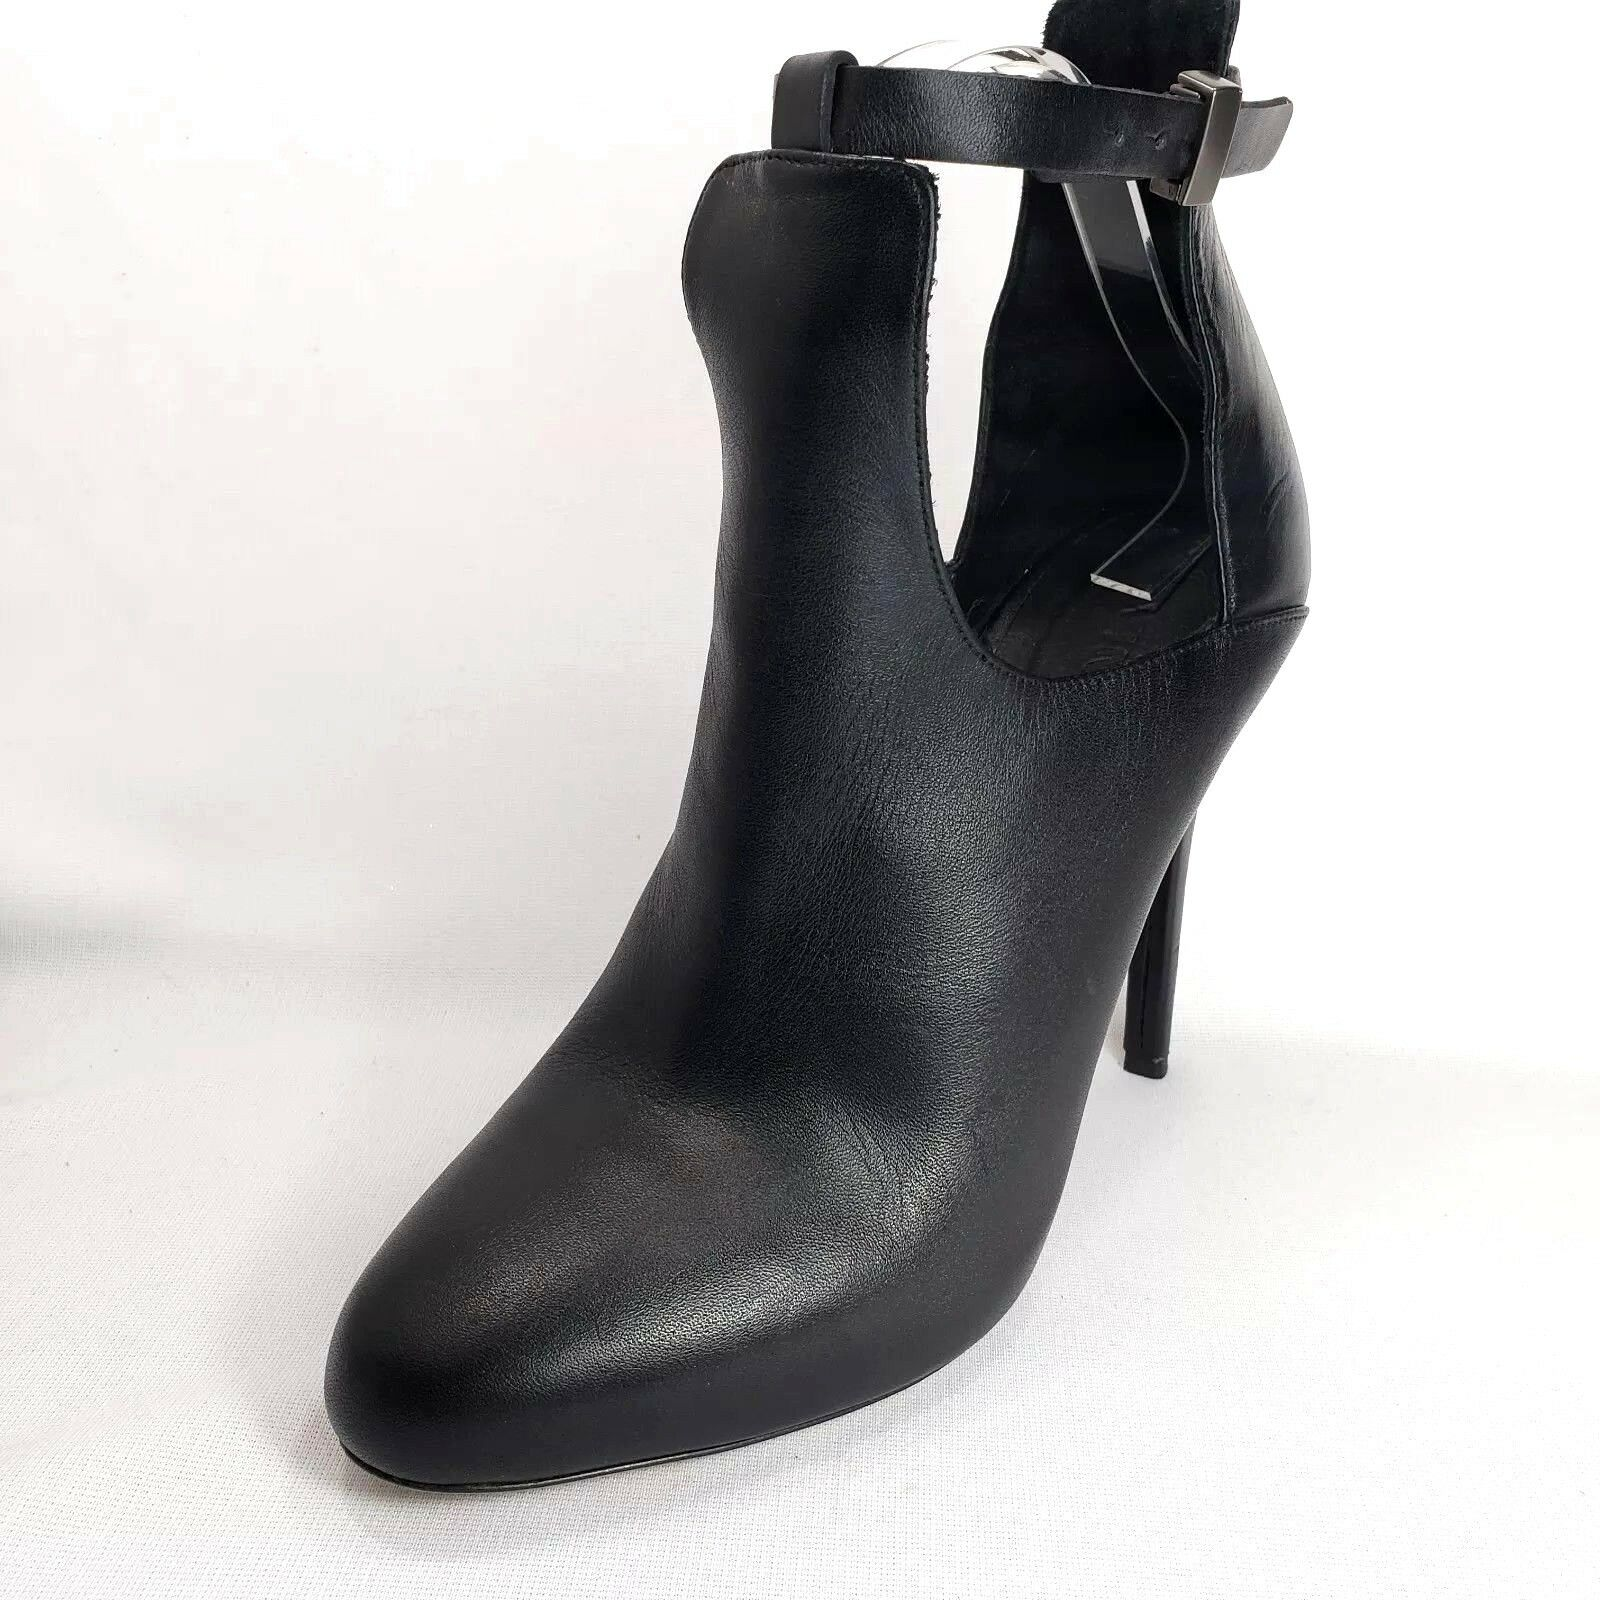 VINCE Sonia Black Leather High Heel Ankle Cut Out Booties Womens Size 9.5M